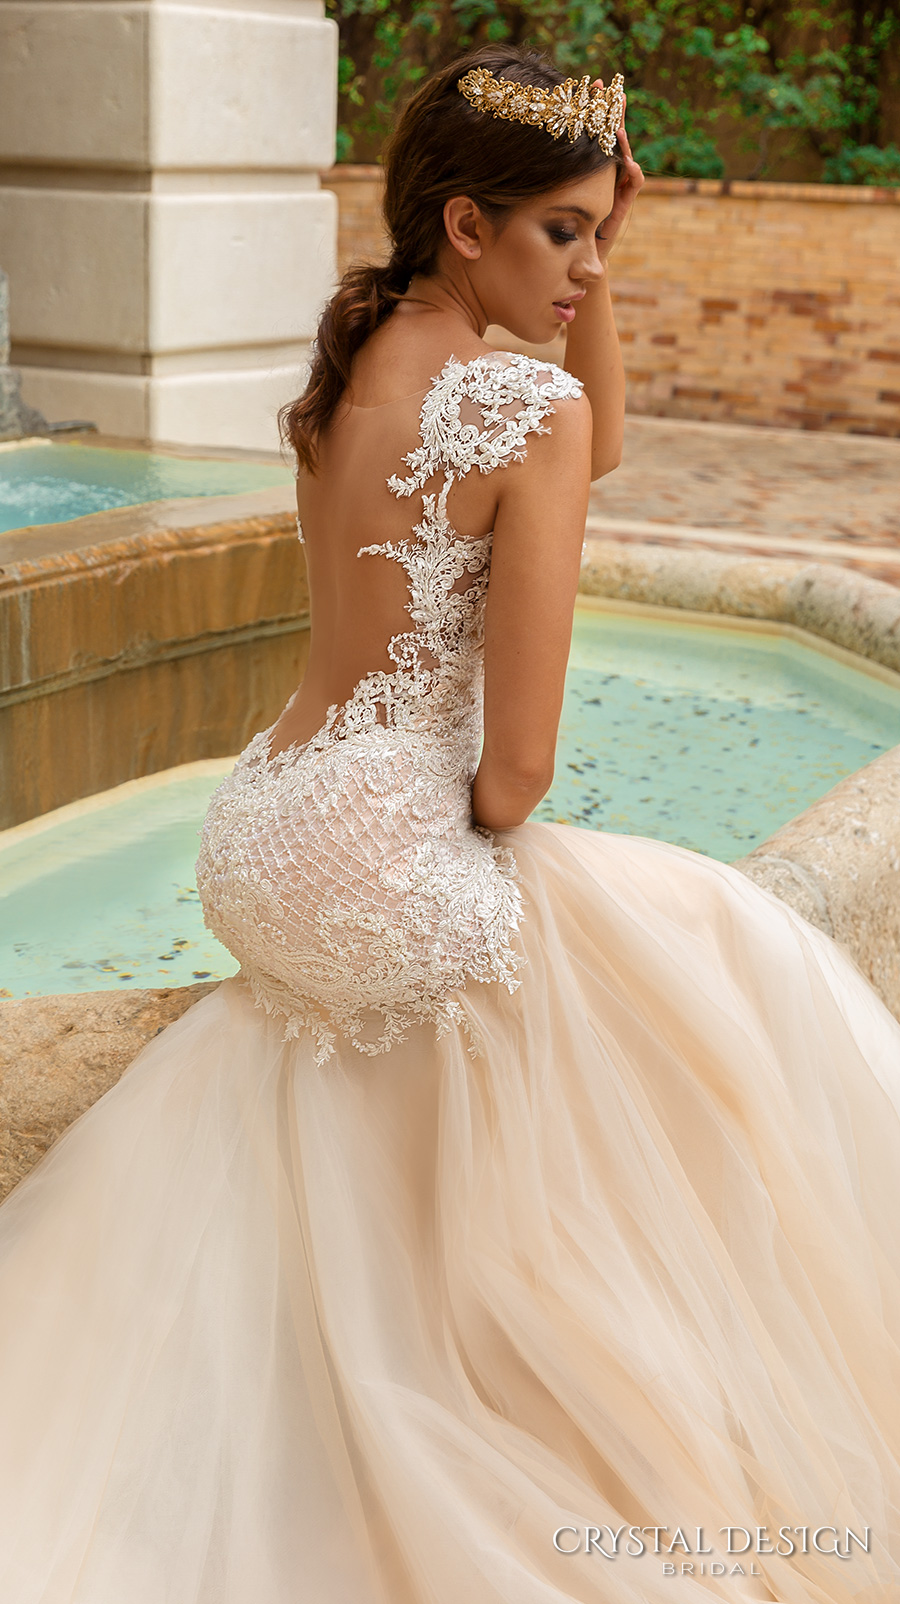 crystal design 2017 bridal sleeveless with strap sweetheart neckline heavily embellished bodice tulle fit and flare mermaid wedding dress low back royal train (solange) zbv